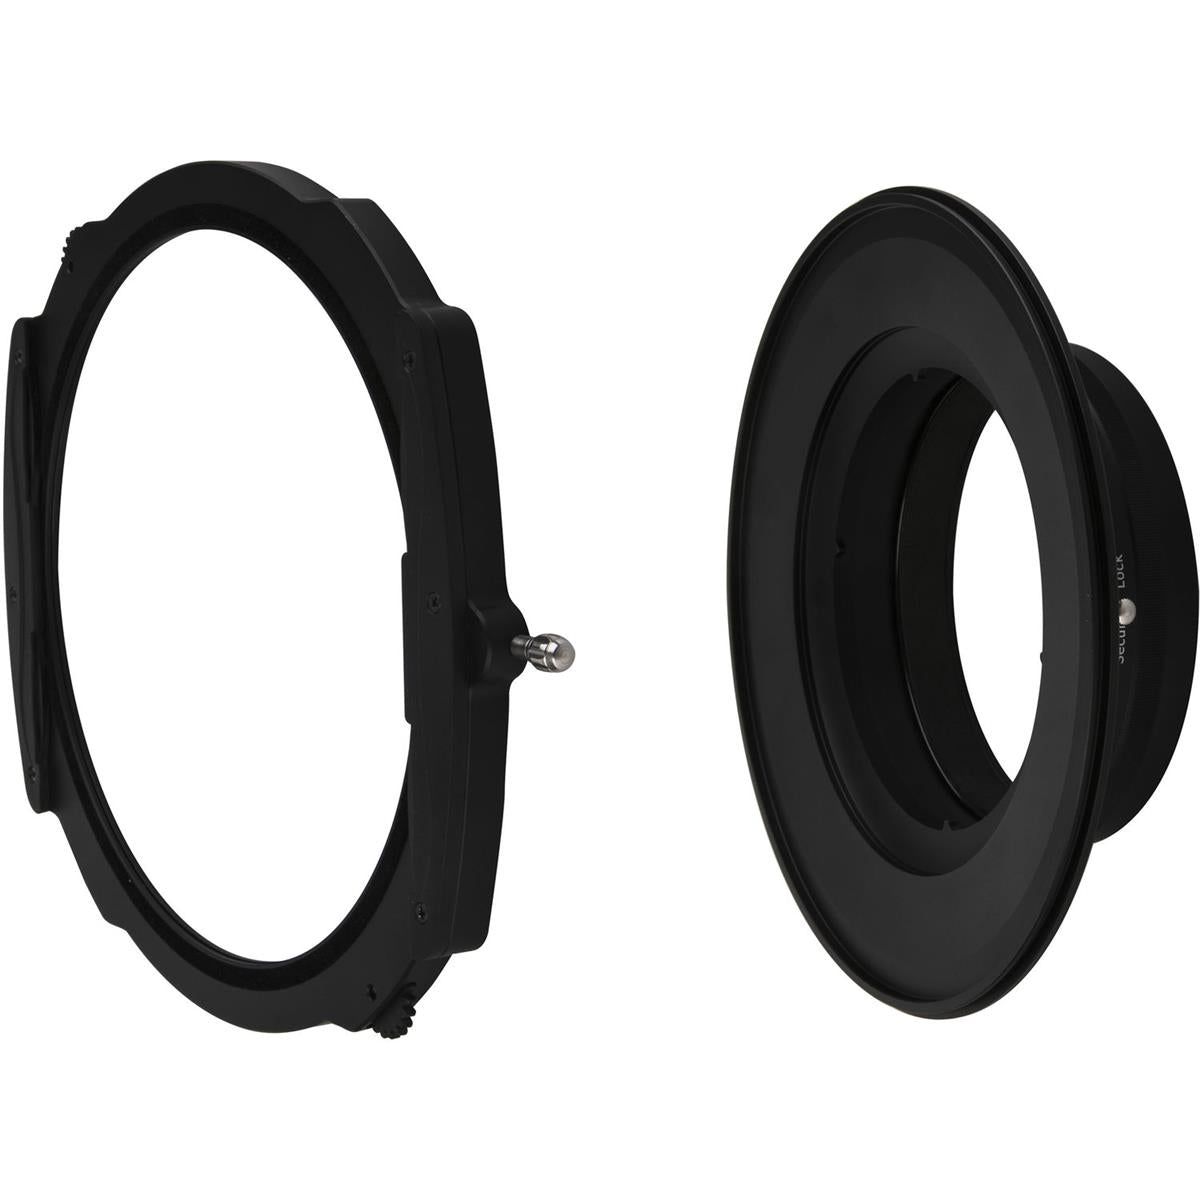 Haida M15 Filter Holder System for Sigma 14-24 F/2.8G DG DN Art for Sony E and Leica L